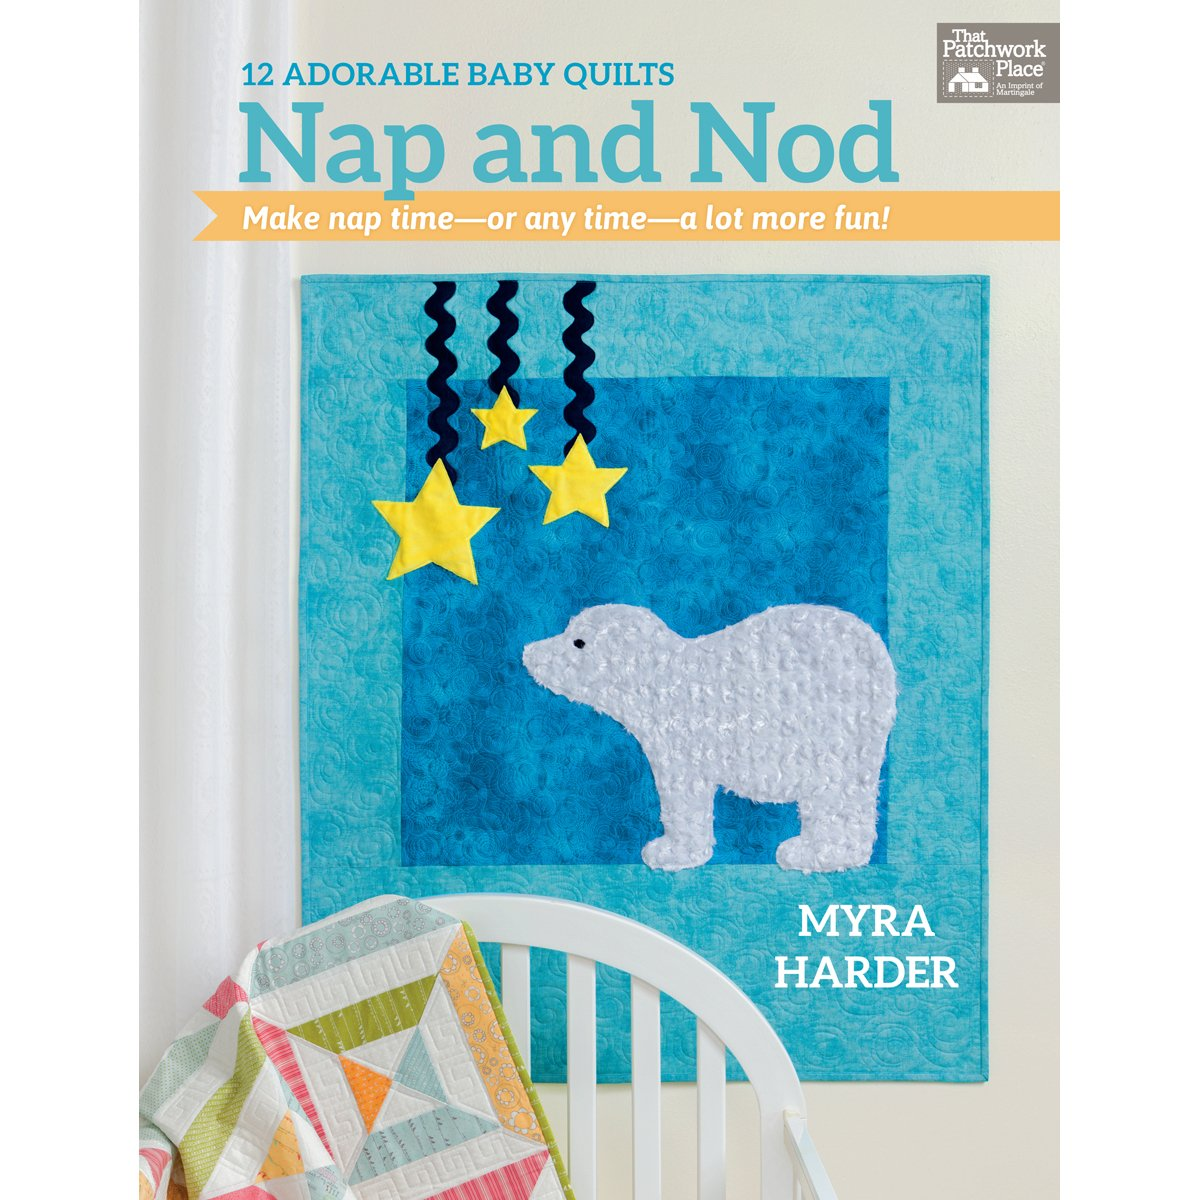 Nap Nod Adorable Baby Quilts product image